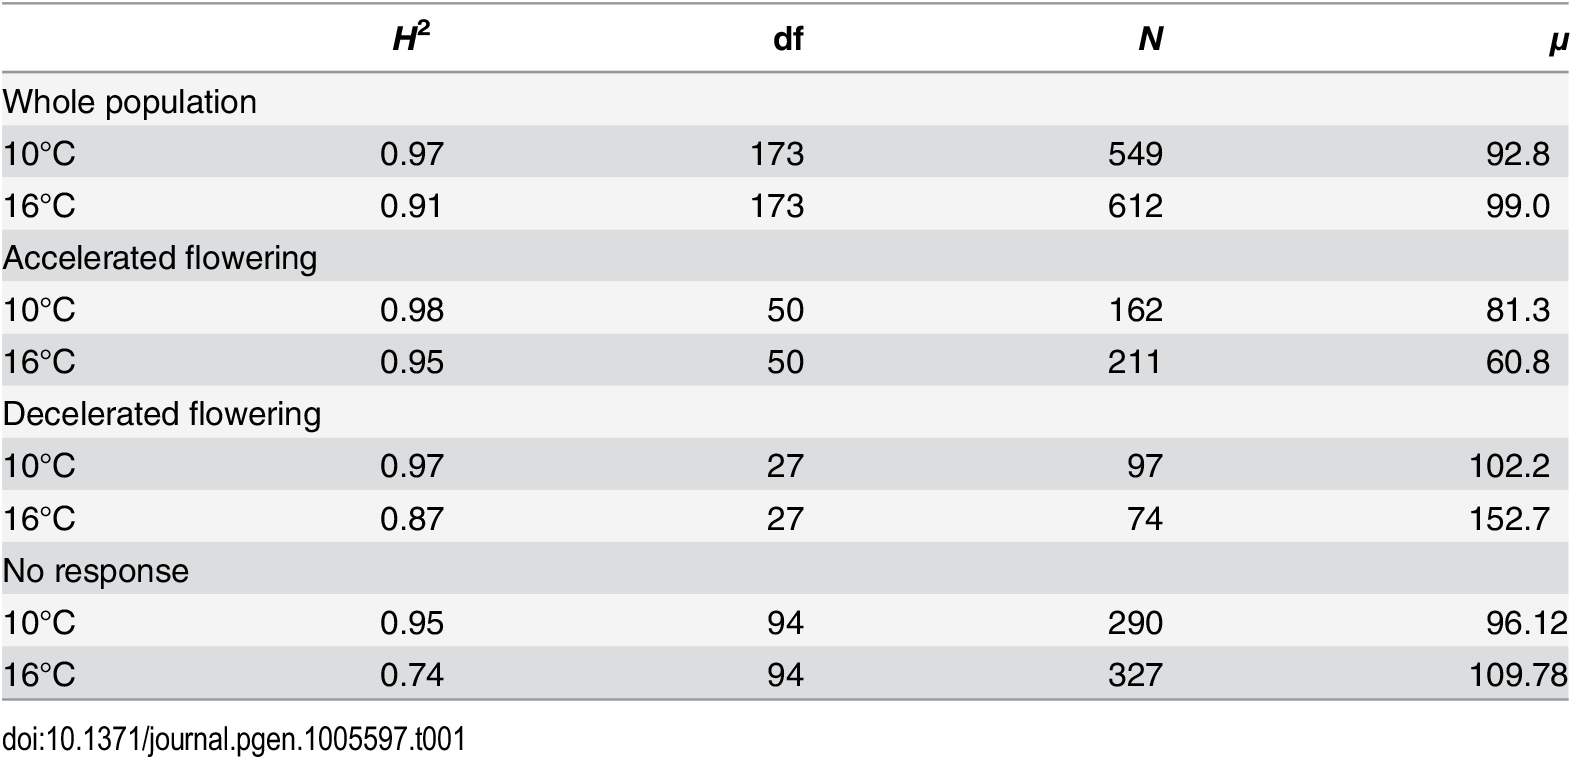 Broad-sense heritability of flowering time in both temperatures, for the full sample and separately for the subsets of lines that responded differently to the change in temperature.